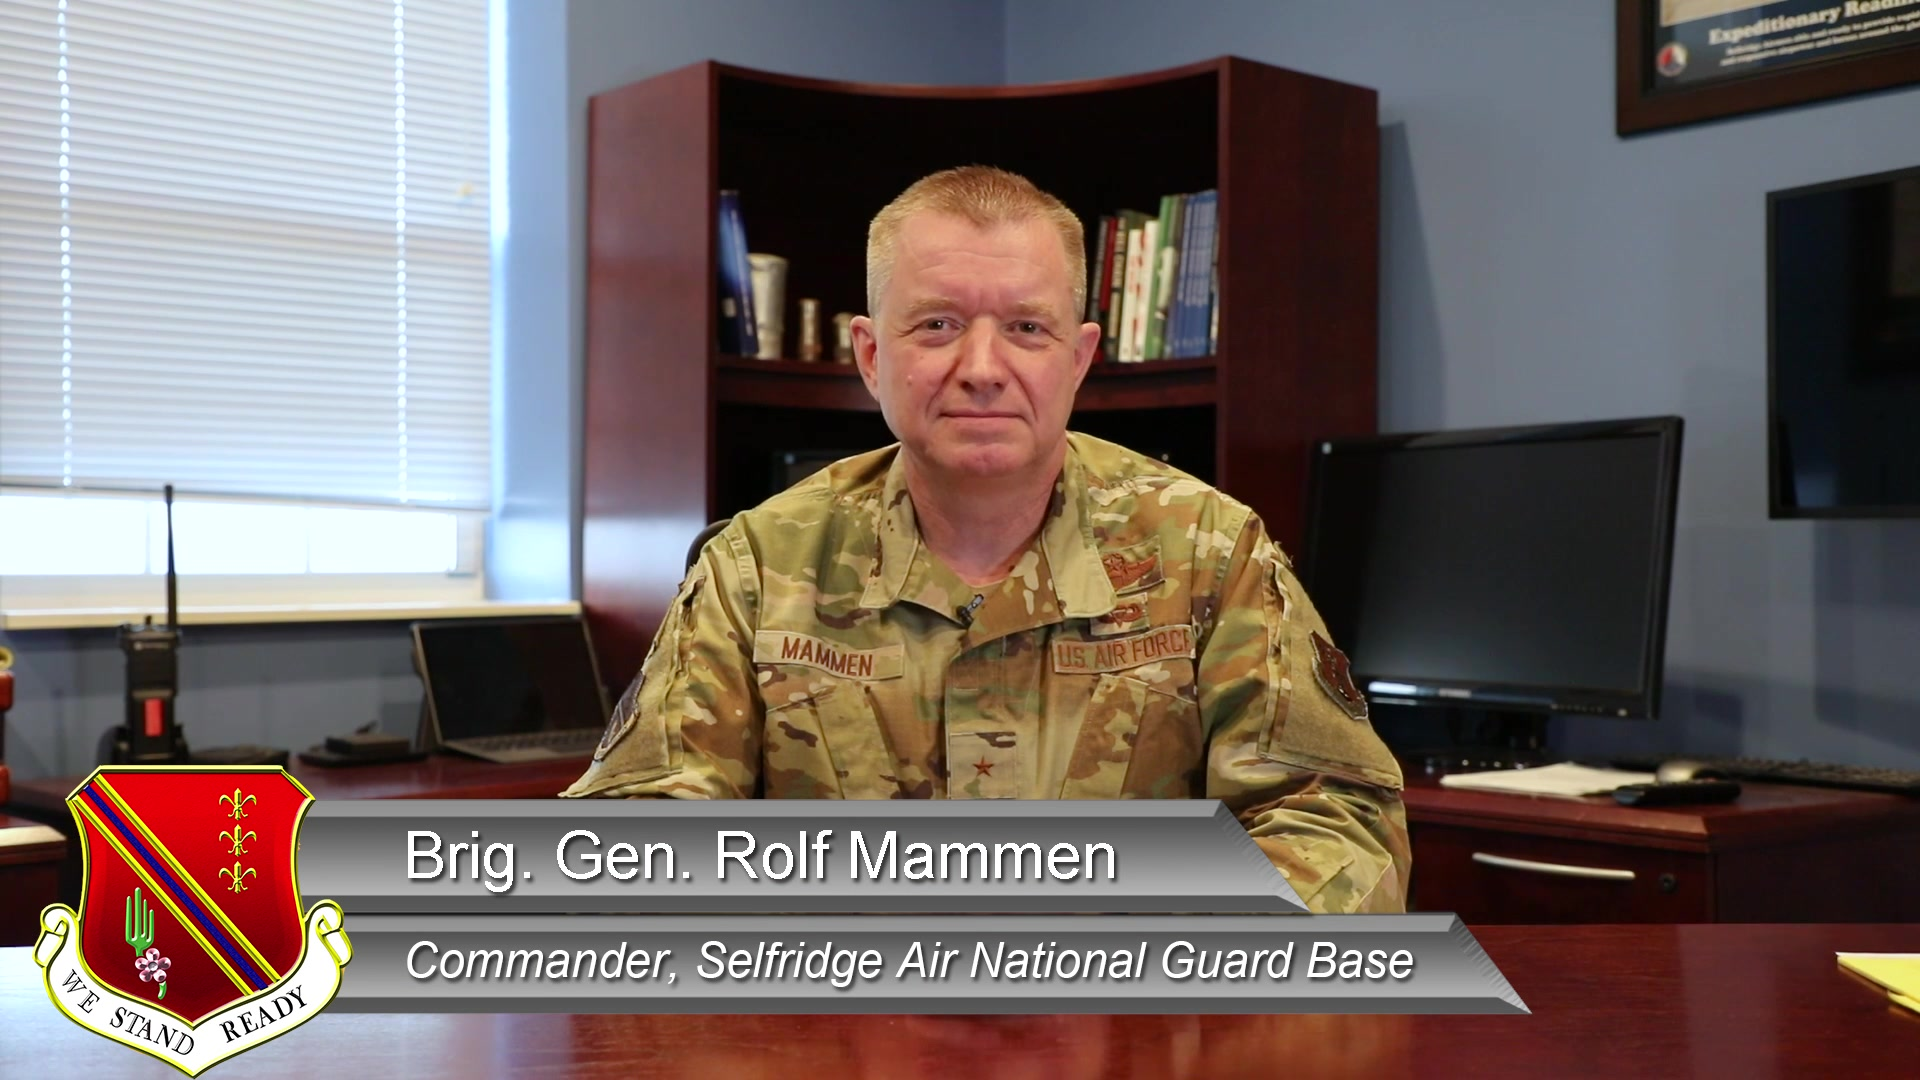 127th Wing Commander, Brig. Gen. Rolf Mammen, and 127th Wing Command Chief, Chief Master Sgt. Rick Gordon, deliver their January message to the members of the 127th Wing, Michigan Air National Guard.